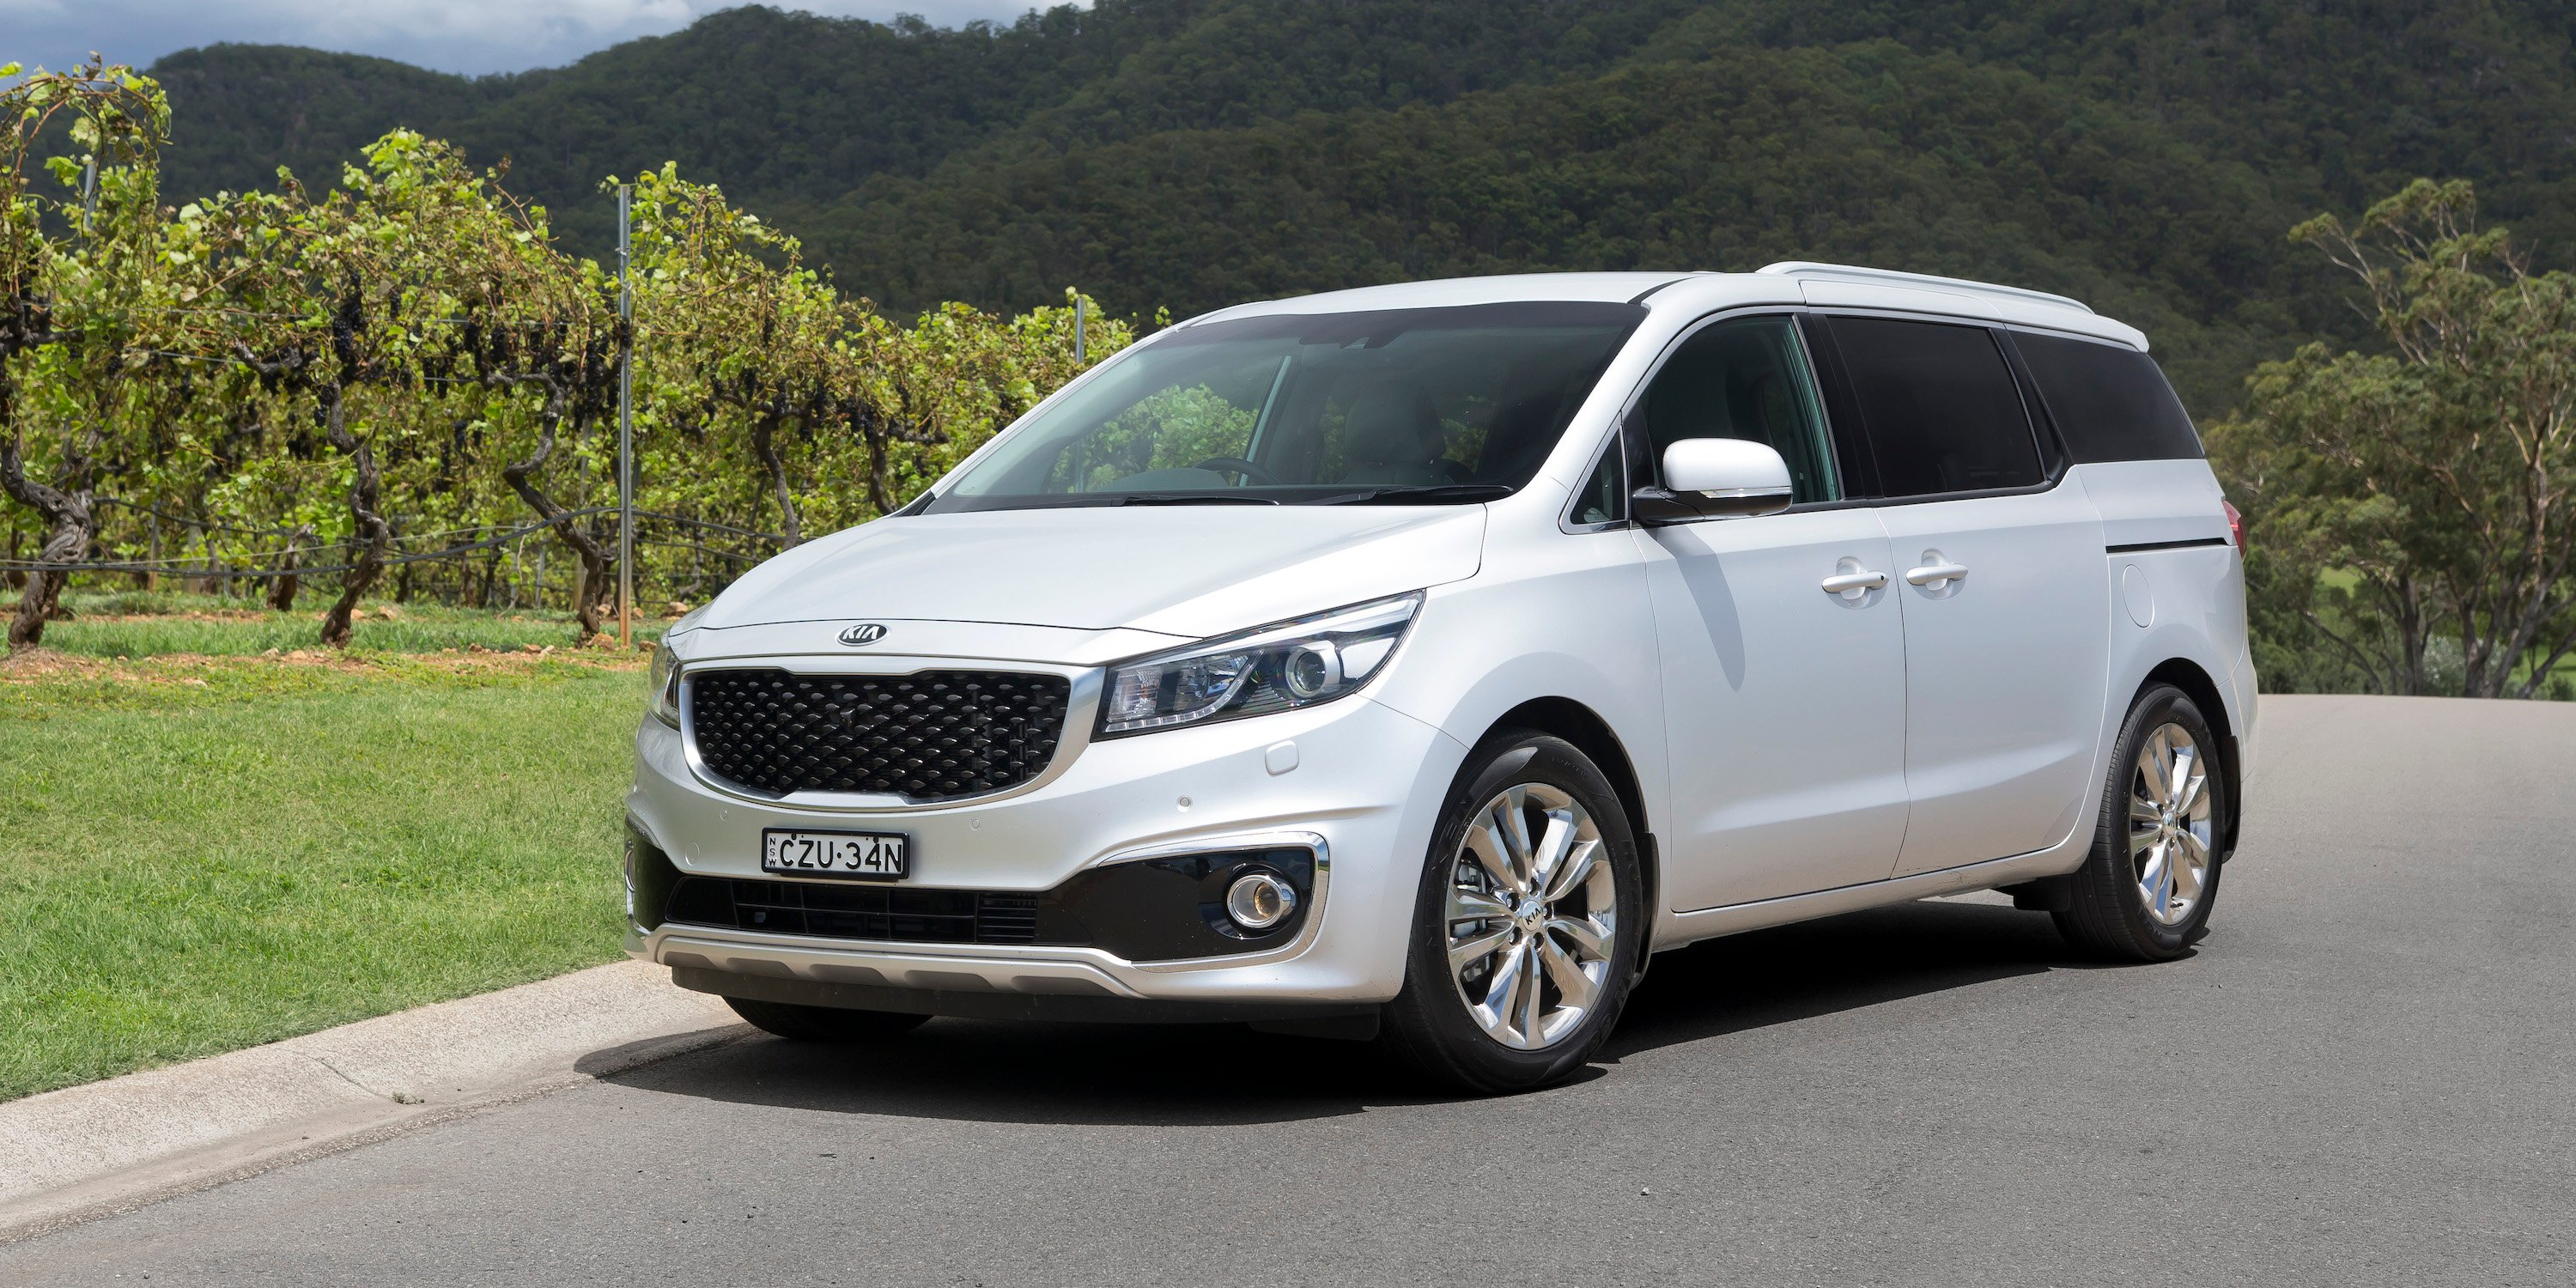 2016 kia carnival gets five star ancap safety rating photos 1 of 3. Black Bedroom Furniture Sets. Home Design Ideas